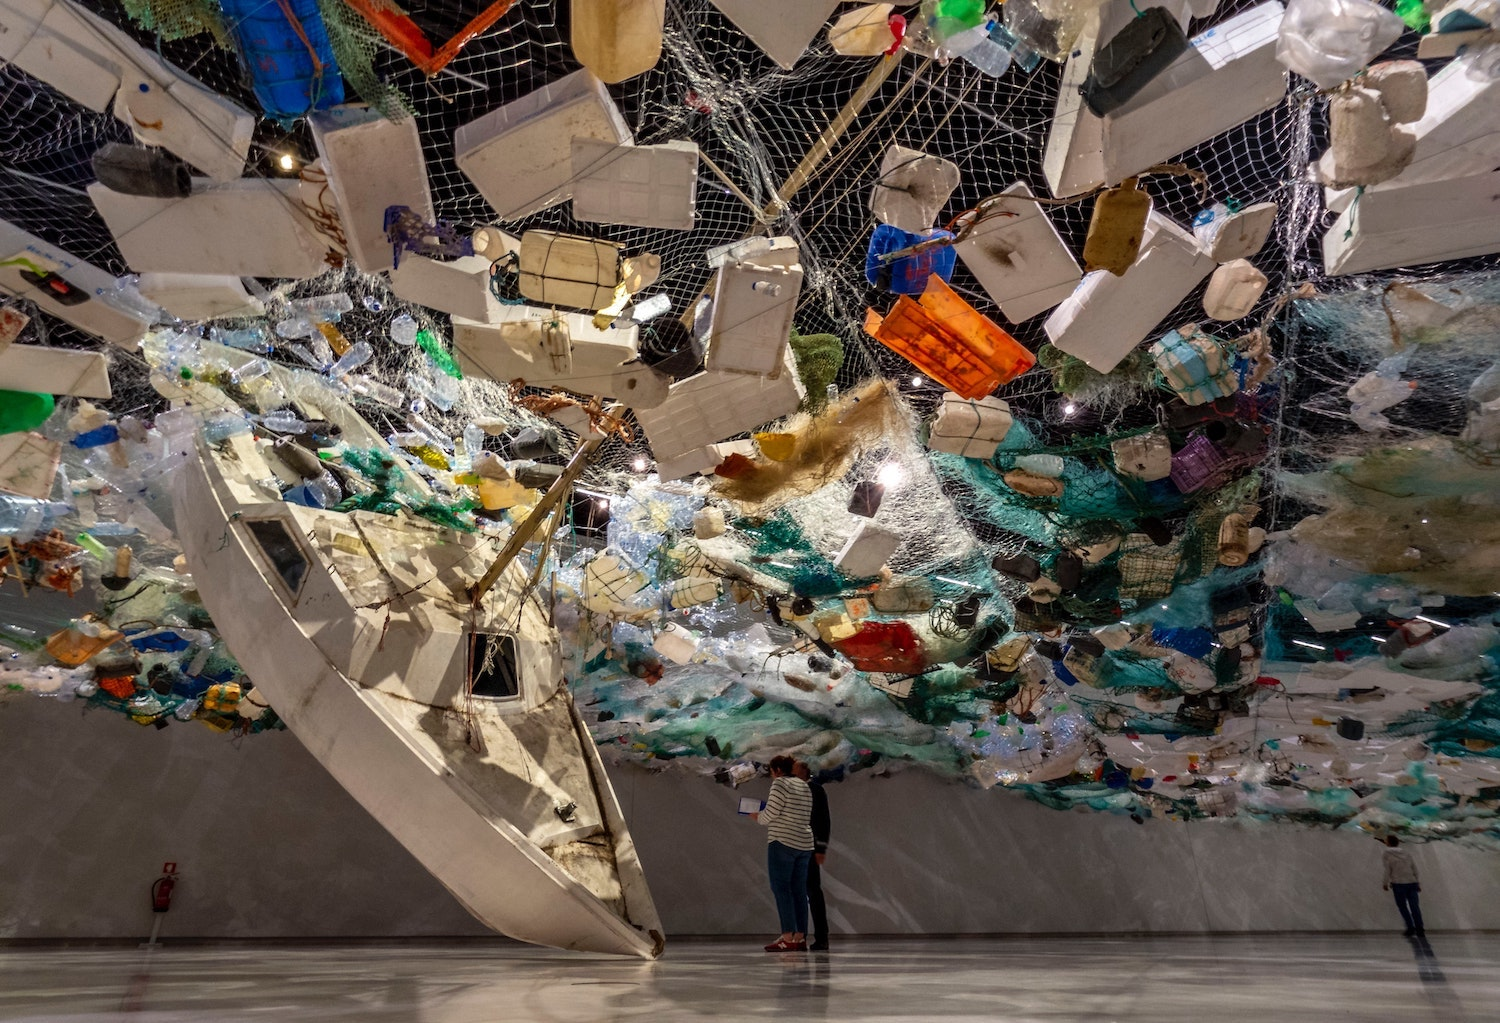 Plastic pollution exhibit showing the amount of plastic in our oceans